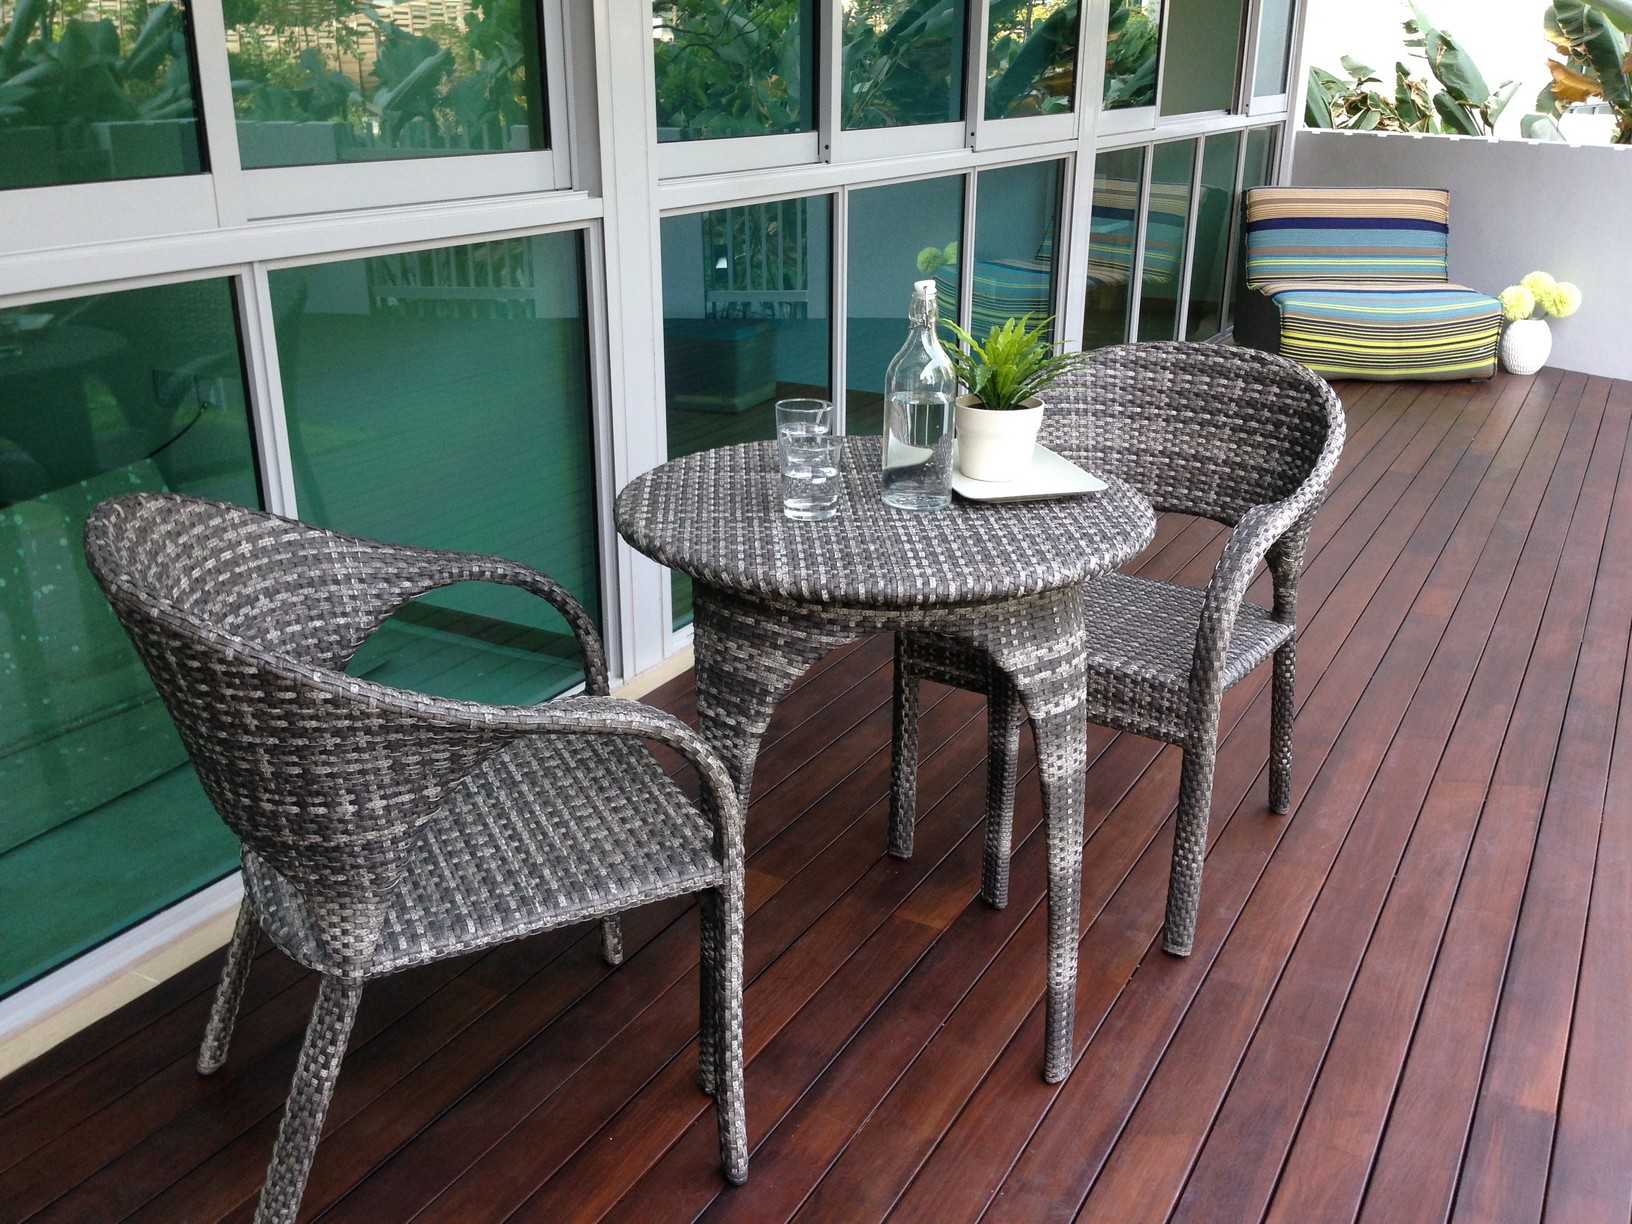 Apartment balcony furniture homesfeed for Balcony furniture set